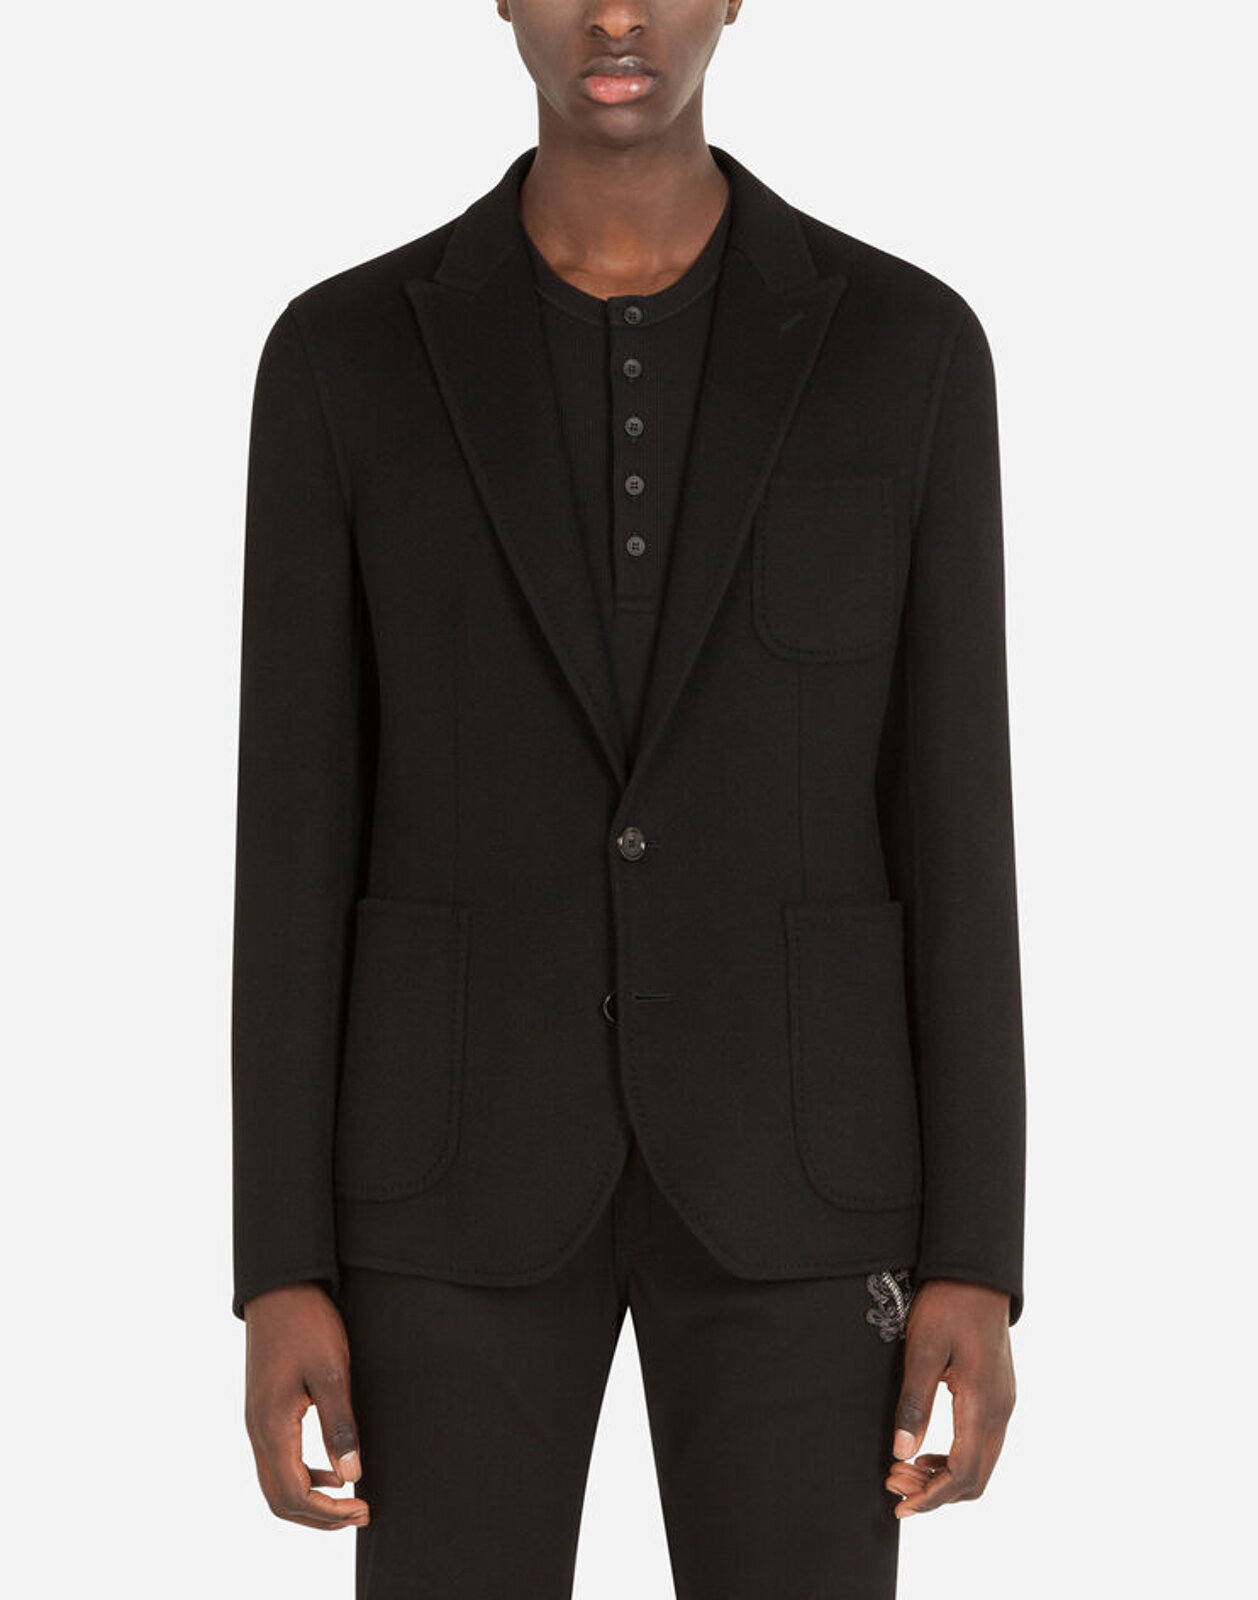 Cashmere Deconstructed Jacket - Dolce & Gabbana